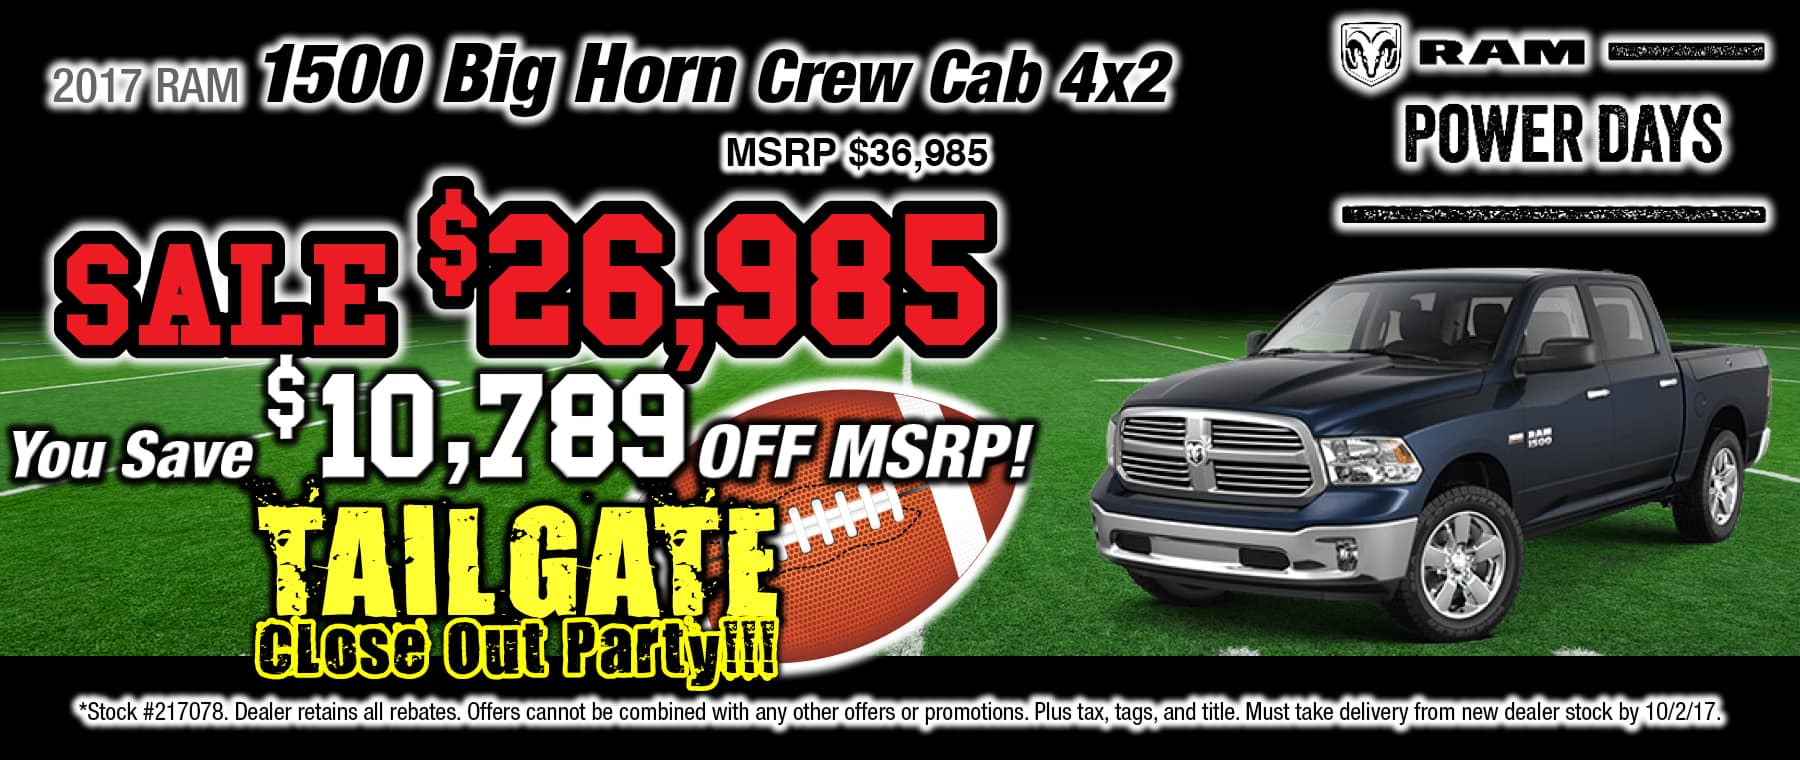 2017 RAM Big Horn Crew Cab 4x2 Special at Thomson RAM in Thomson, GA